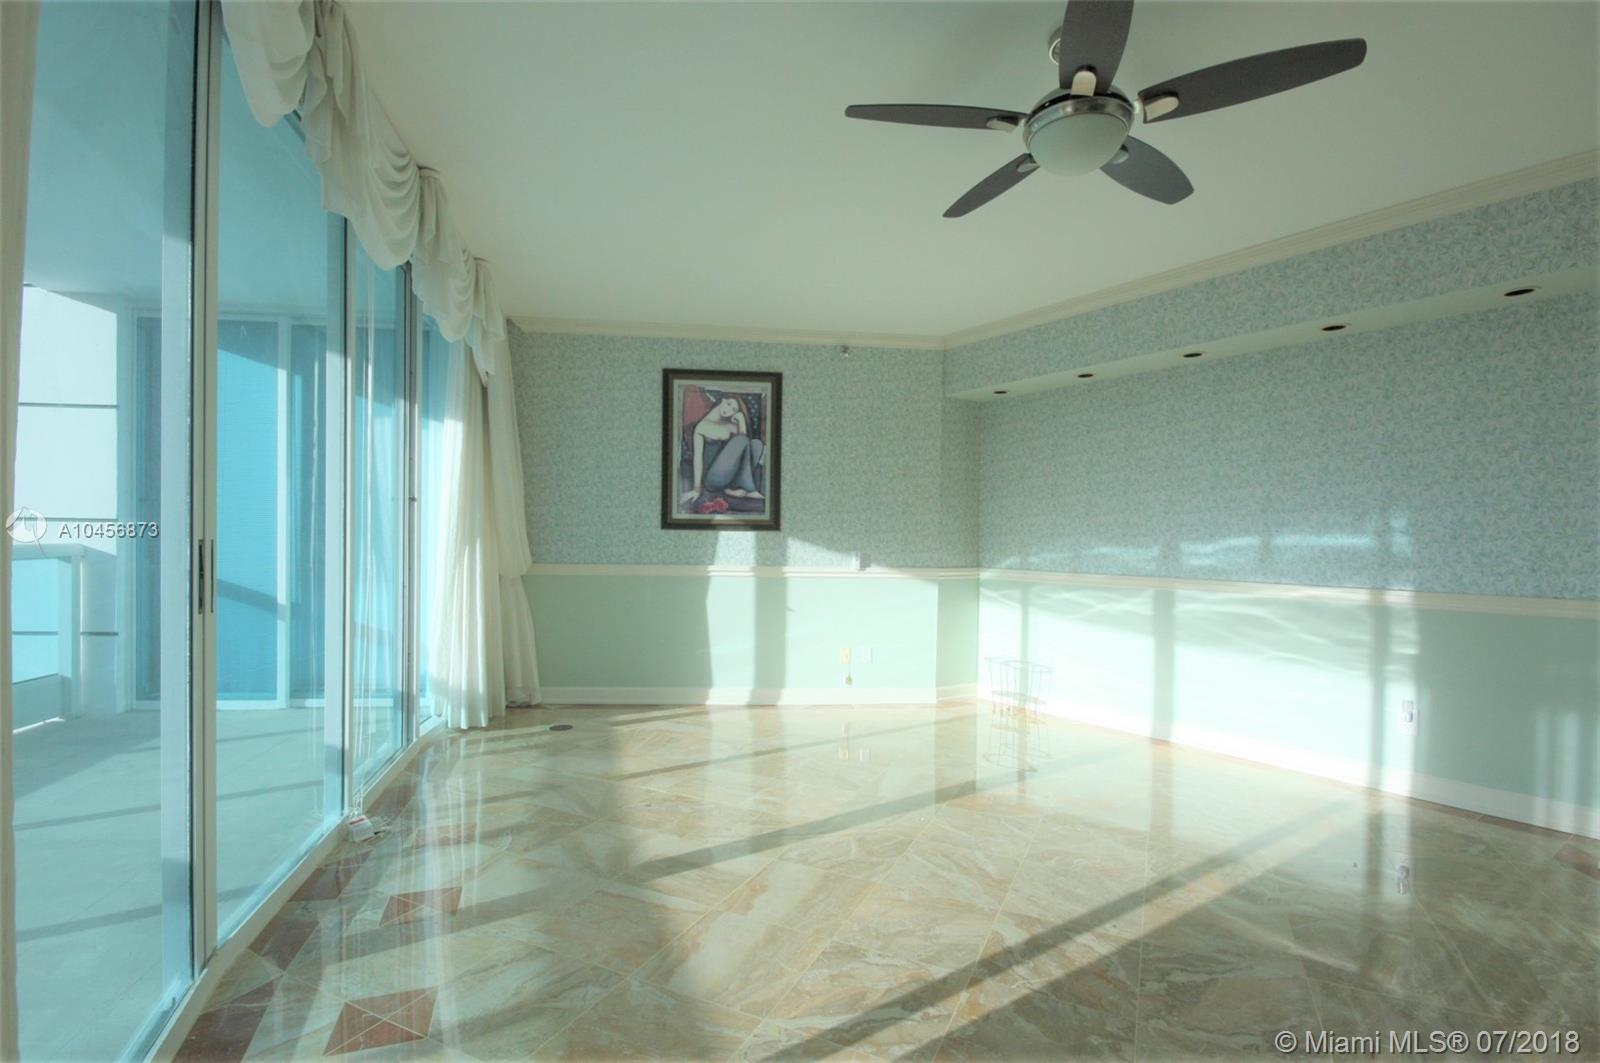 2127 Brickell Avenue, Miami, FL 33129, Bristol Tower Condominium #1702, Brickell, Miami A10456873 image #30